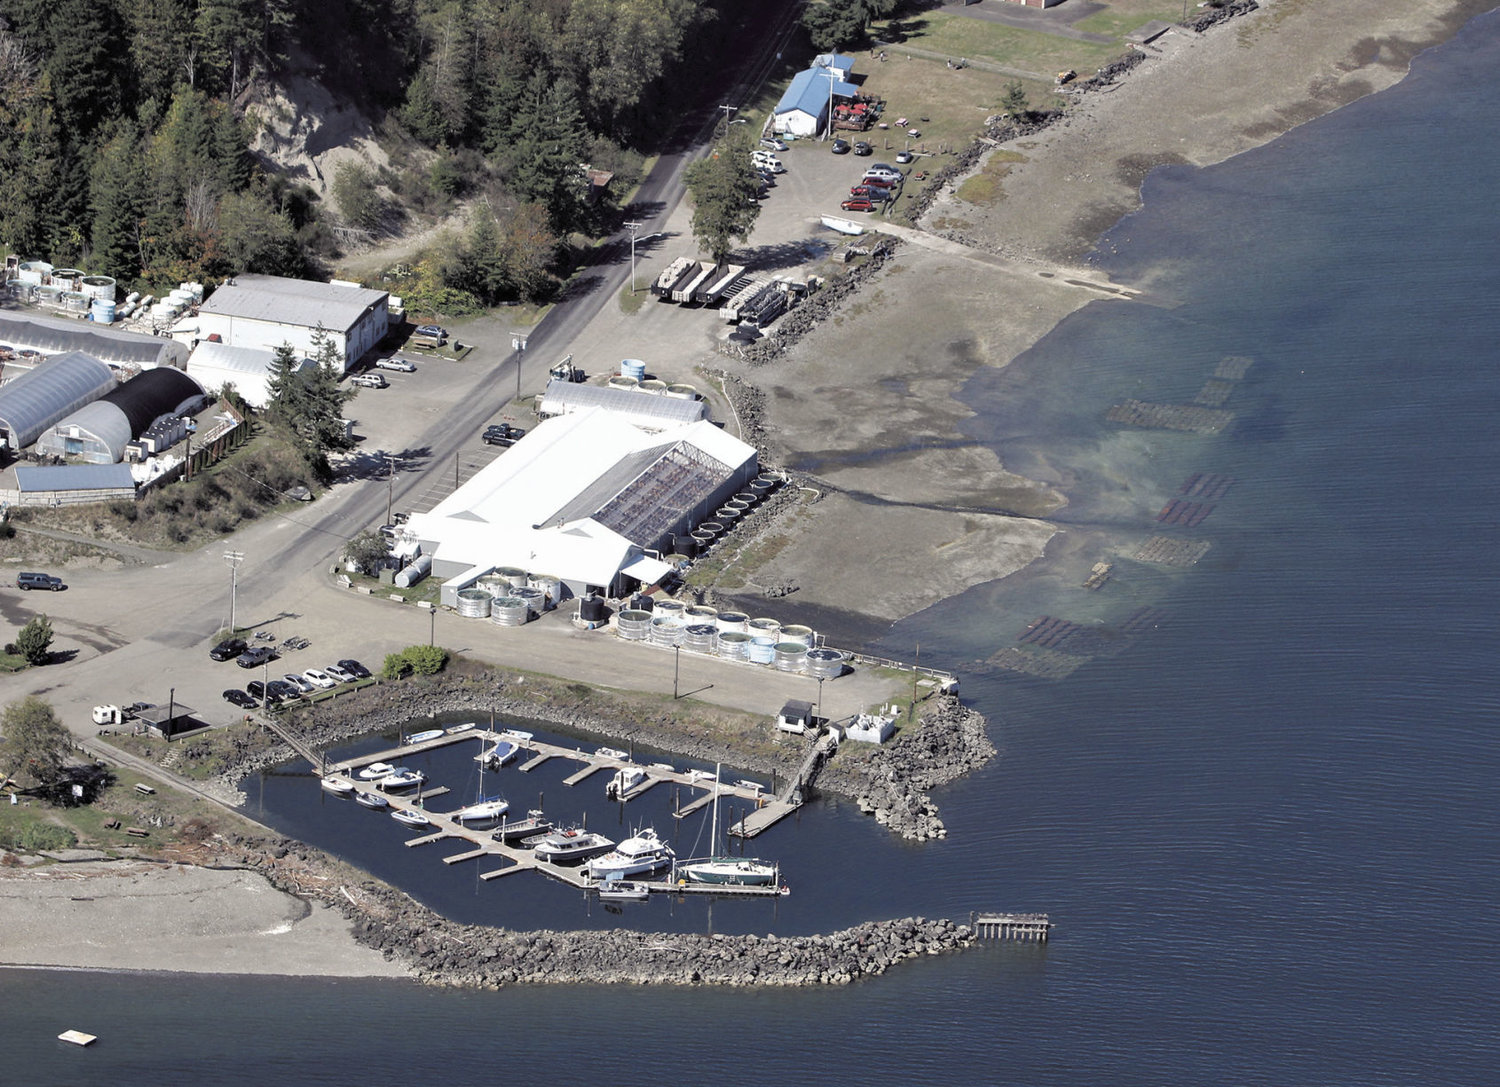 Coast Seafoods Company leases 57 acres from the Port of Port Townsend, next to the Herb Beck Marina on Quilcene Bay. The Olympic Forest Coalition, headquartered in Quilcene, has filed a federal lawsuit, arguing Coast Seafoods needs to filter its effluent from what the company boasts is the largest oyster hatchery in the world. Leader file photo